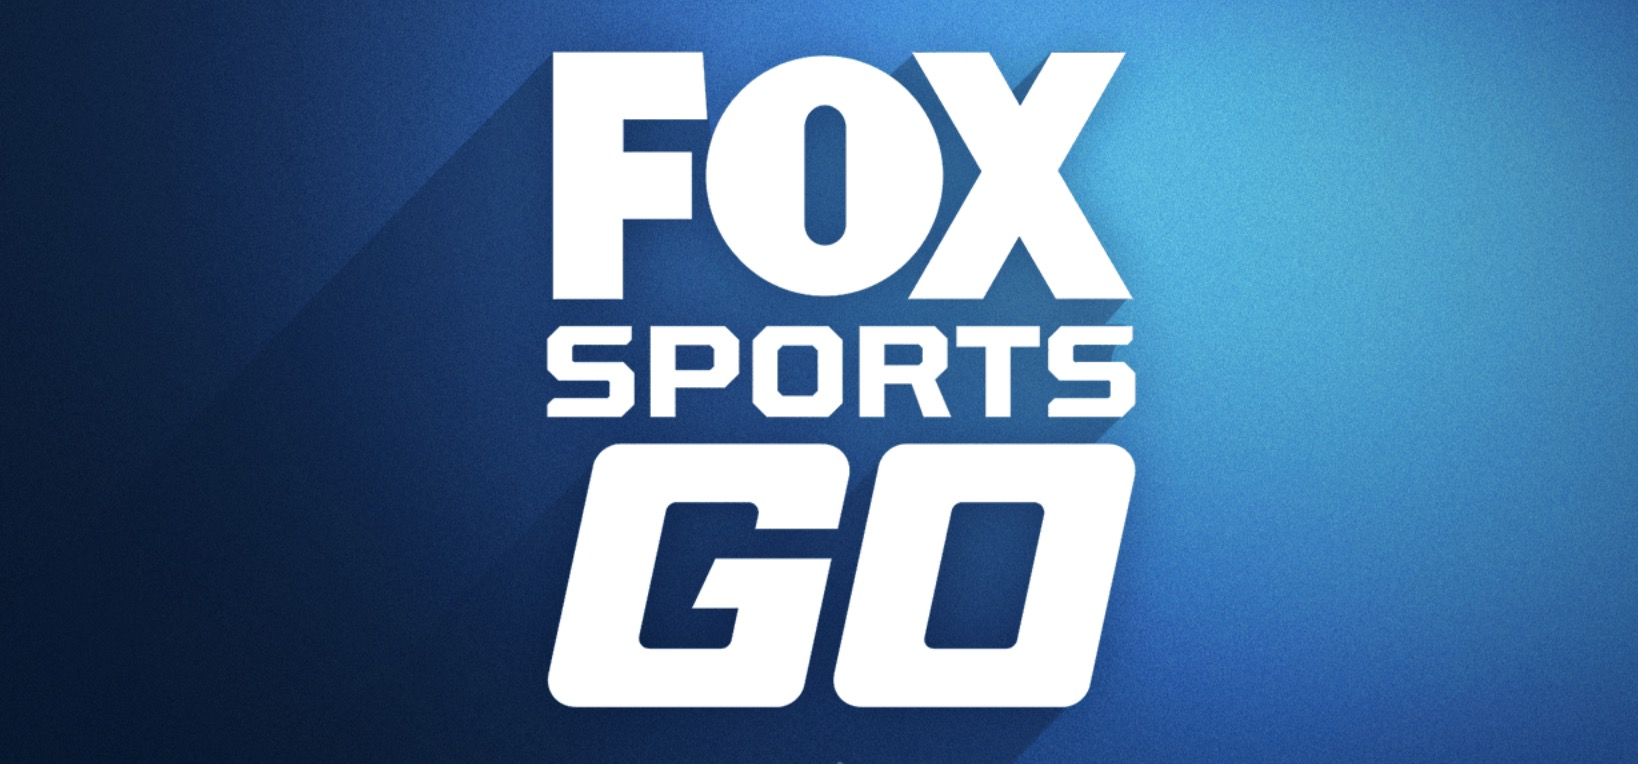 Fox Sports Go now available on XBox One, Chromecast